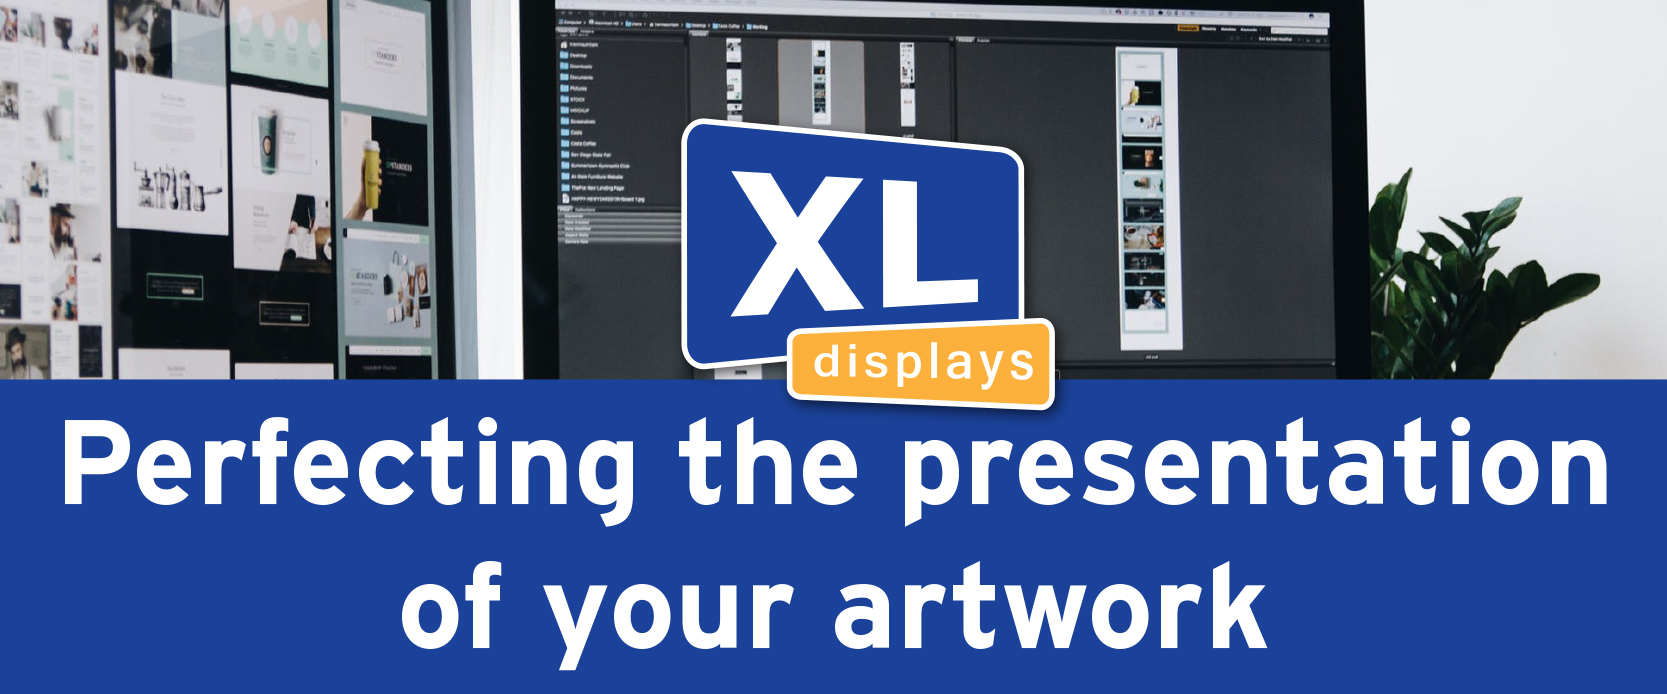 Perfecting the presentation of your artwork